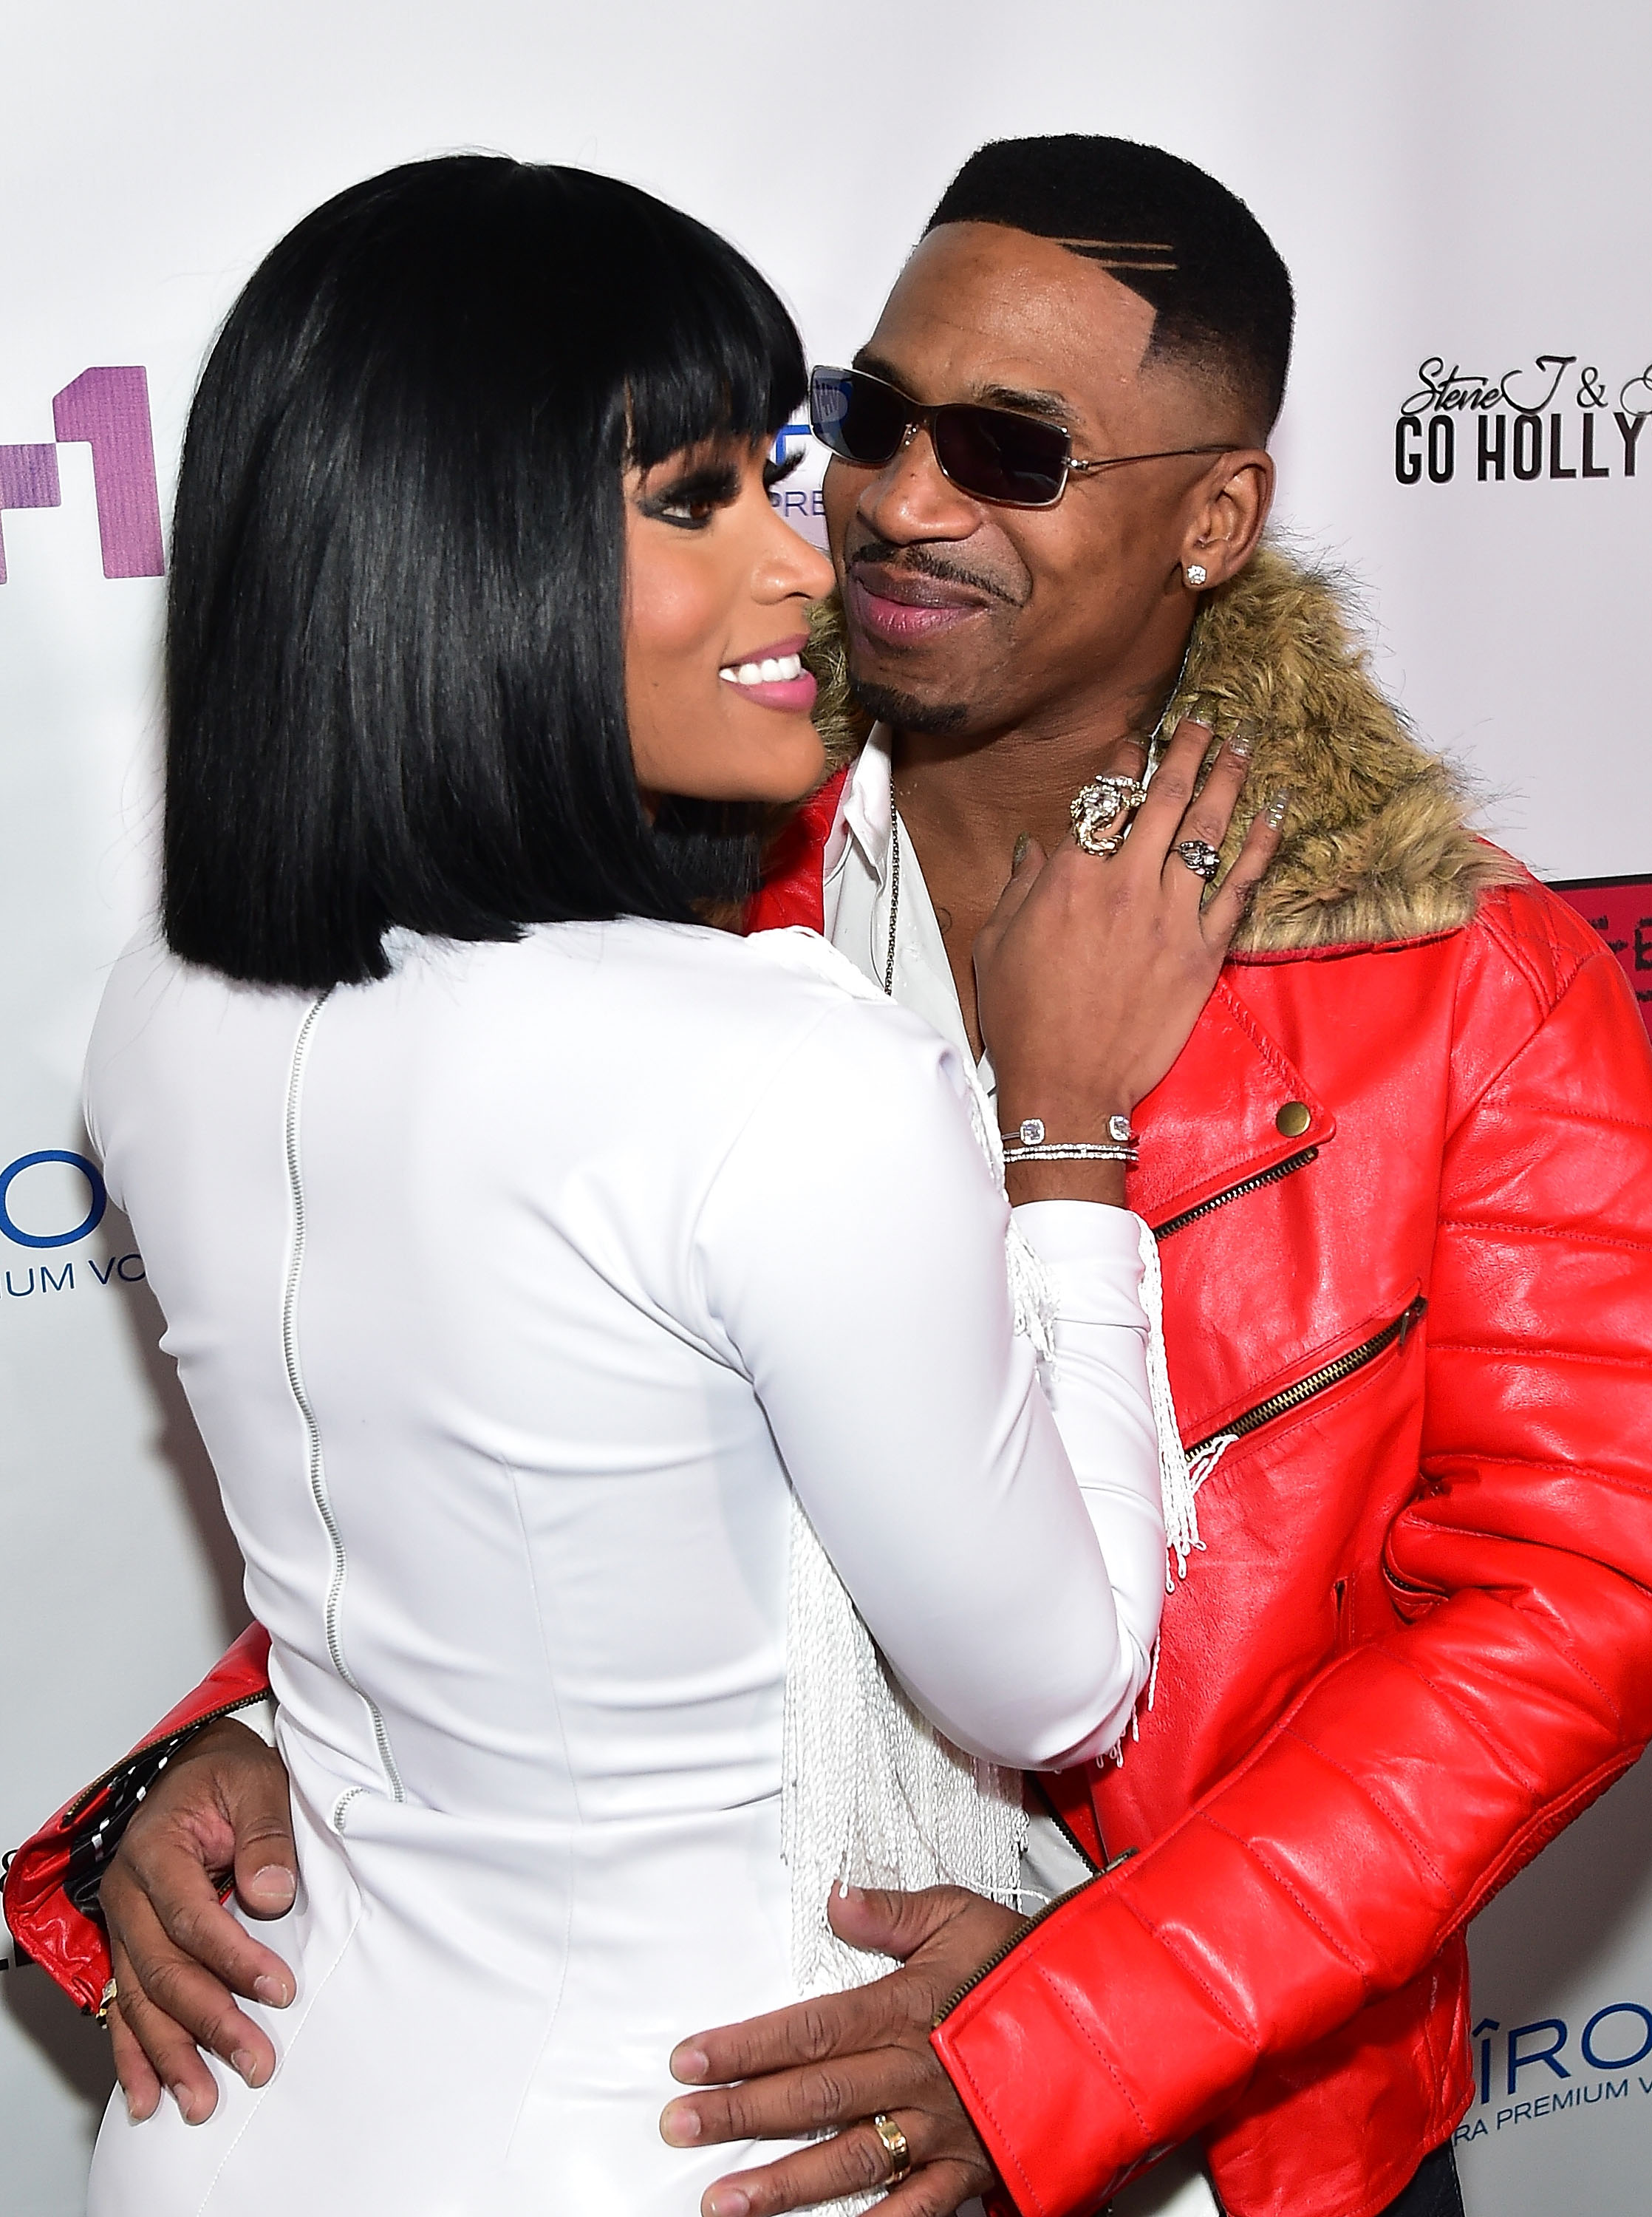 Who is joseline dating now 2018